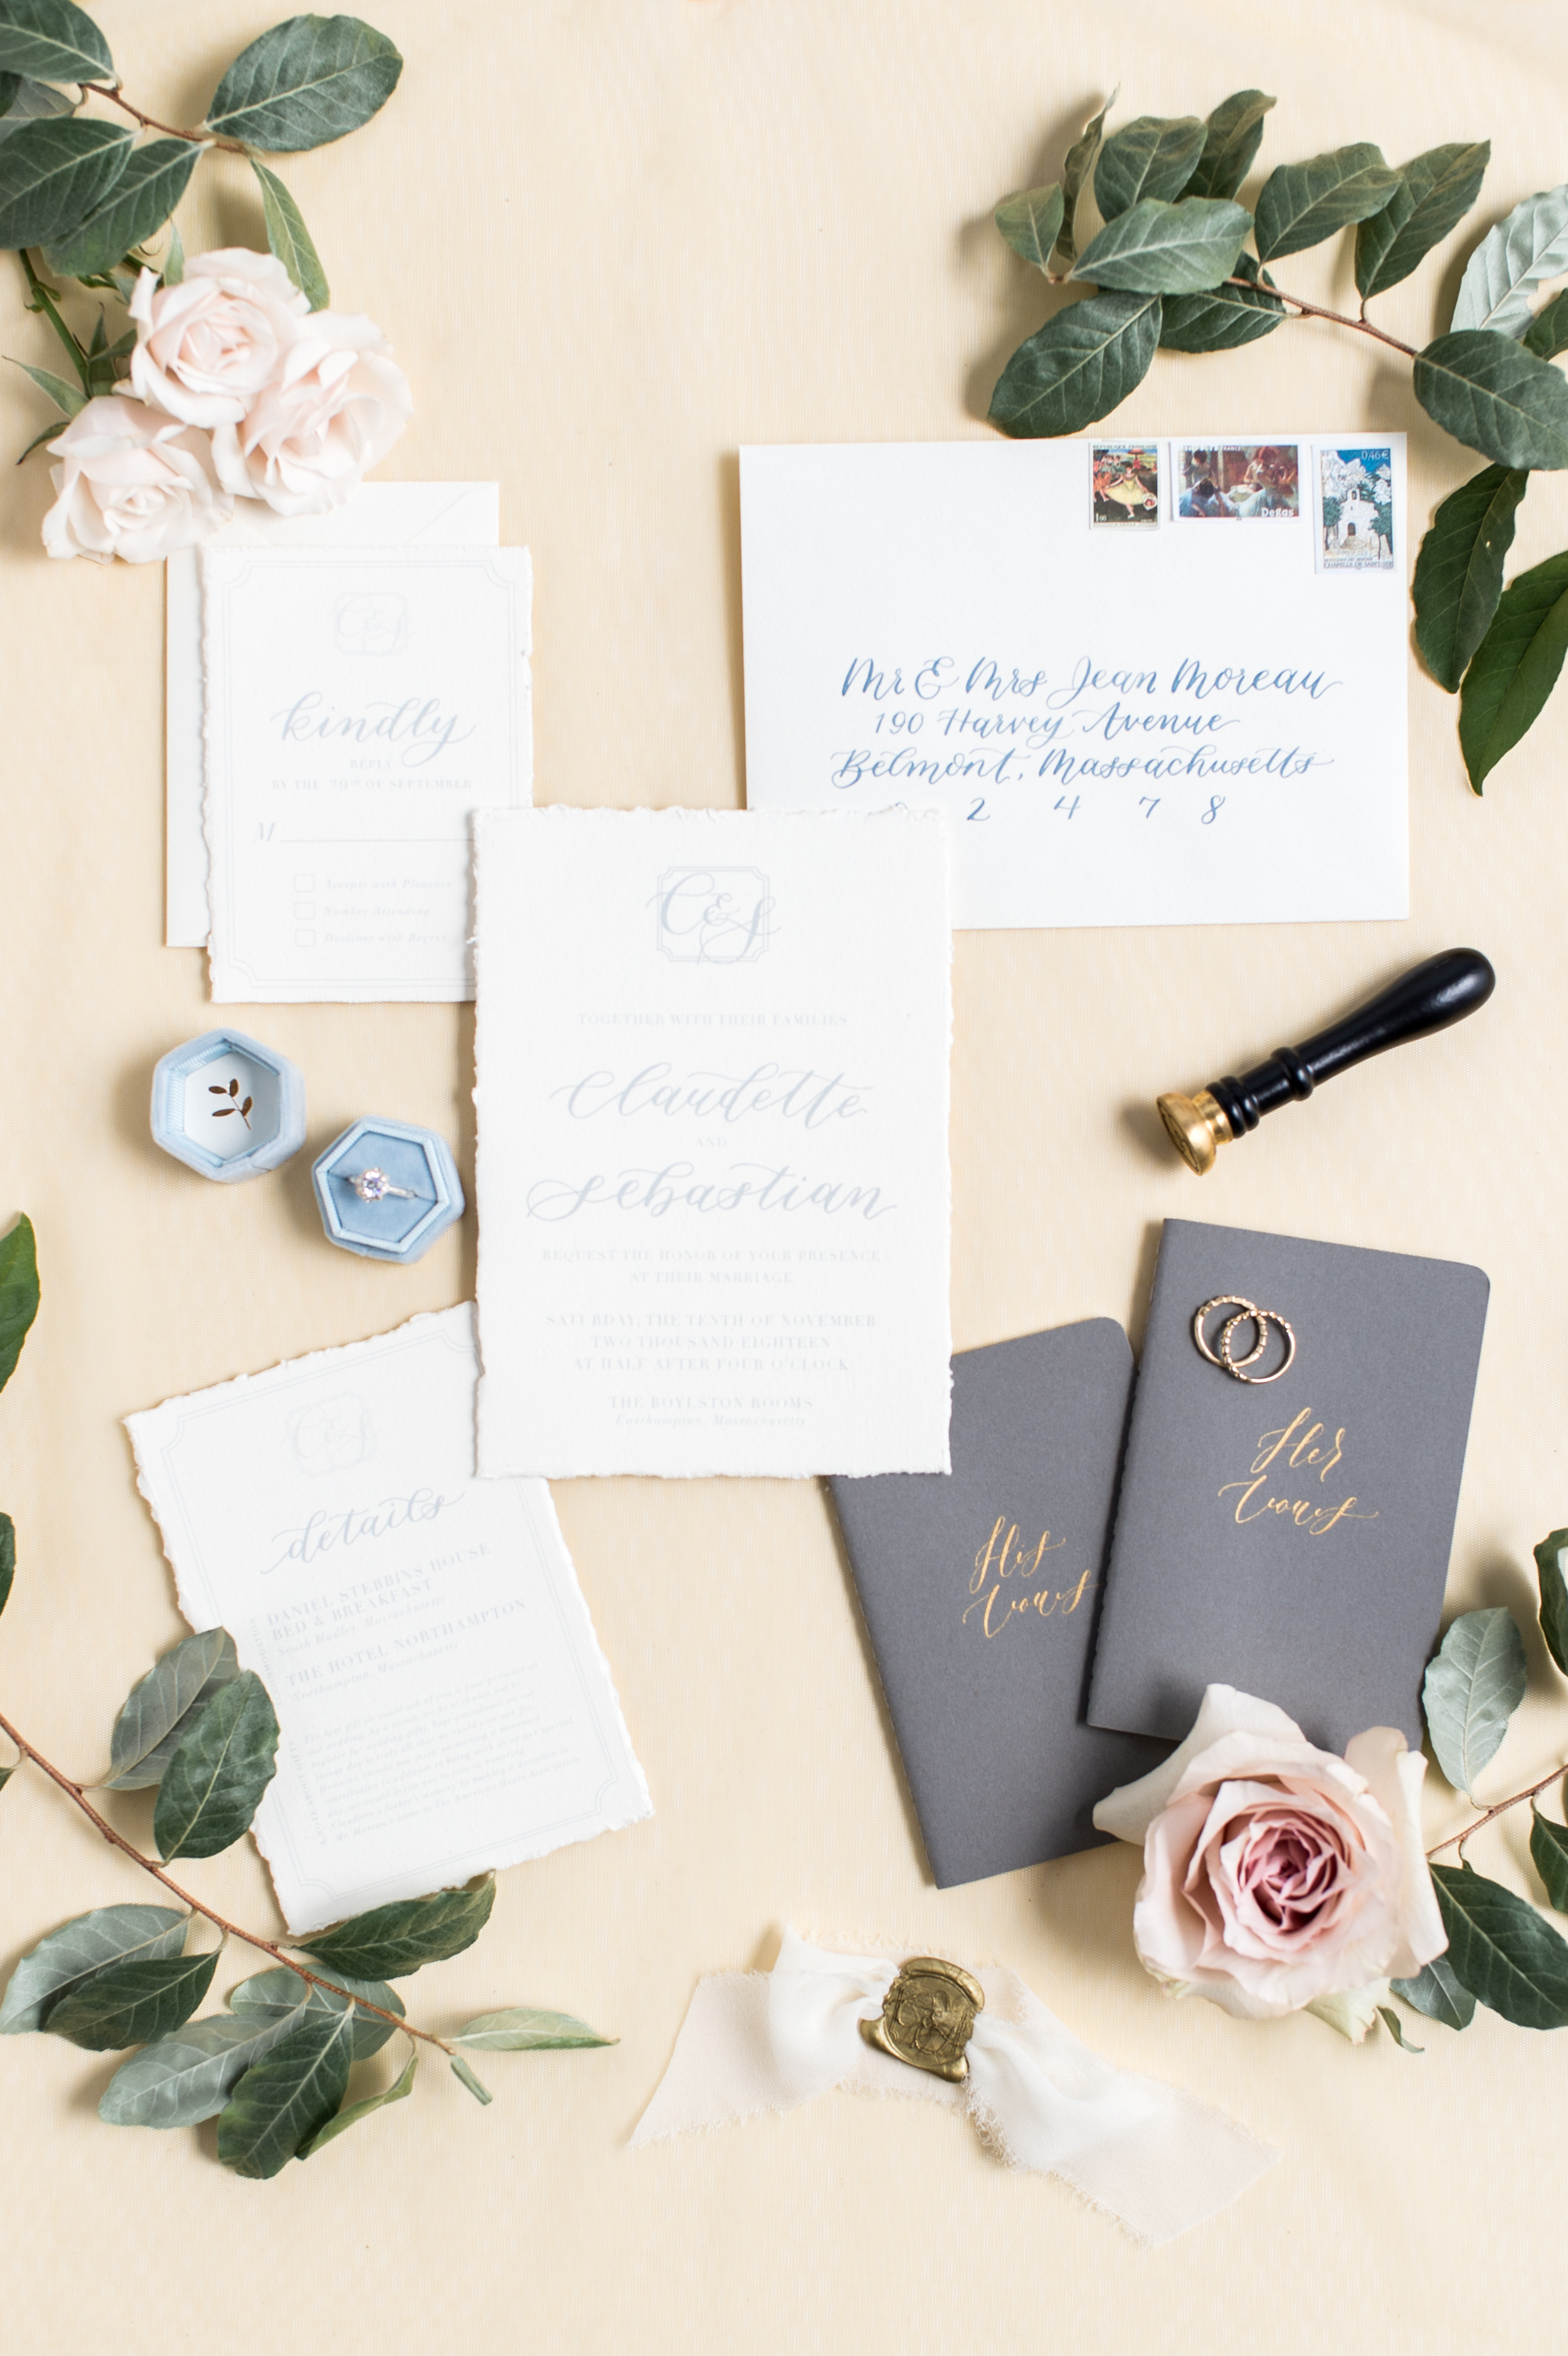 Styling by Urban Soiree Boston, Paper and Calligraphy by Haley Tyson Design, Rings by e. scott originals